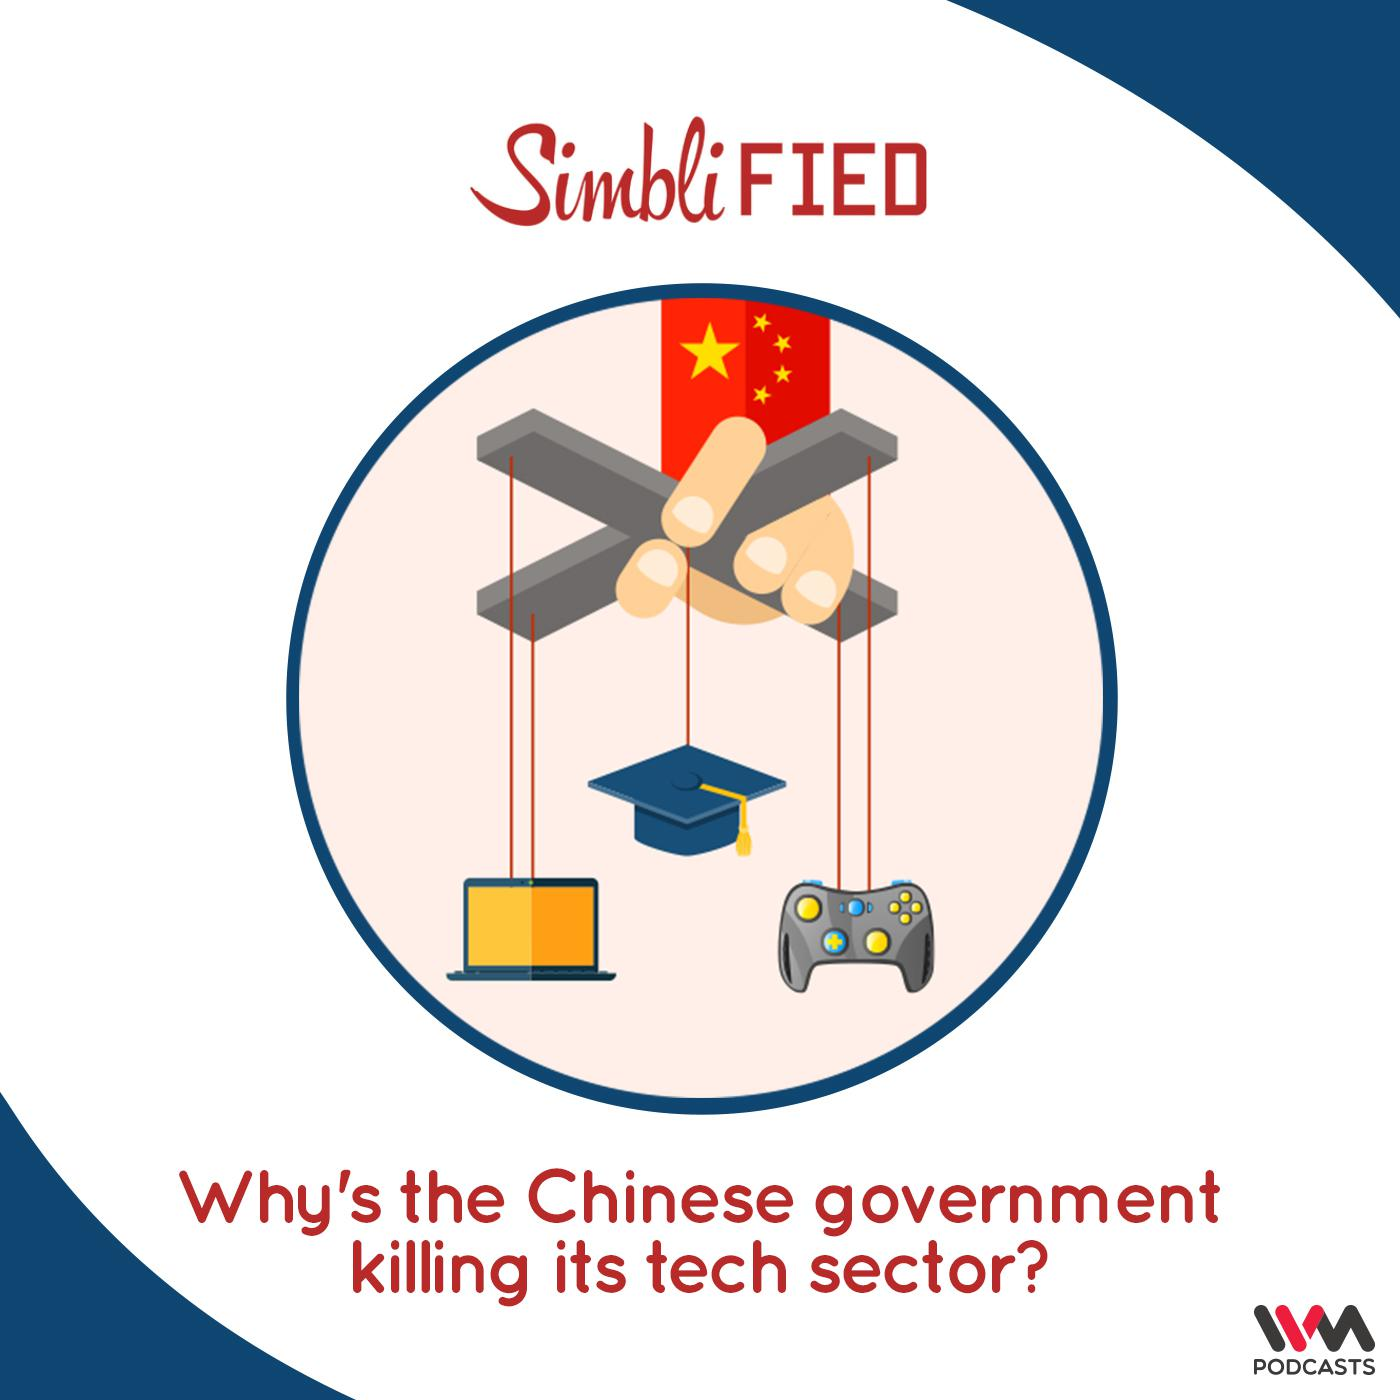 Why's the Chinese government killing its tech sector?